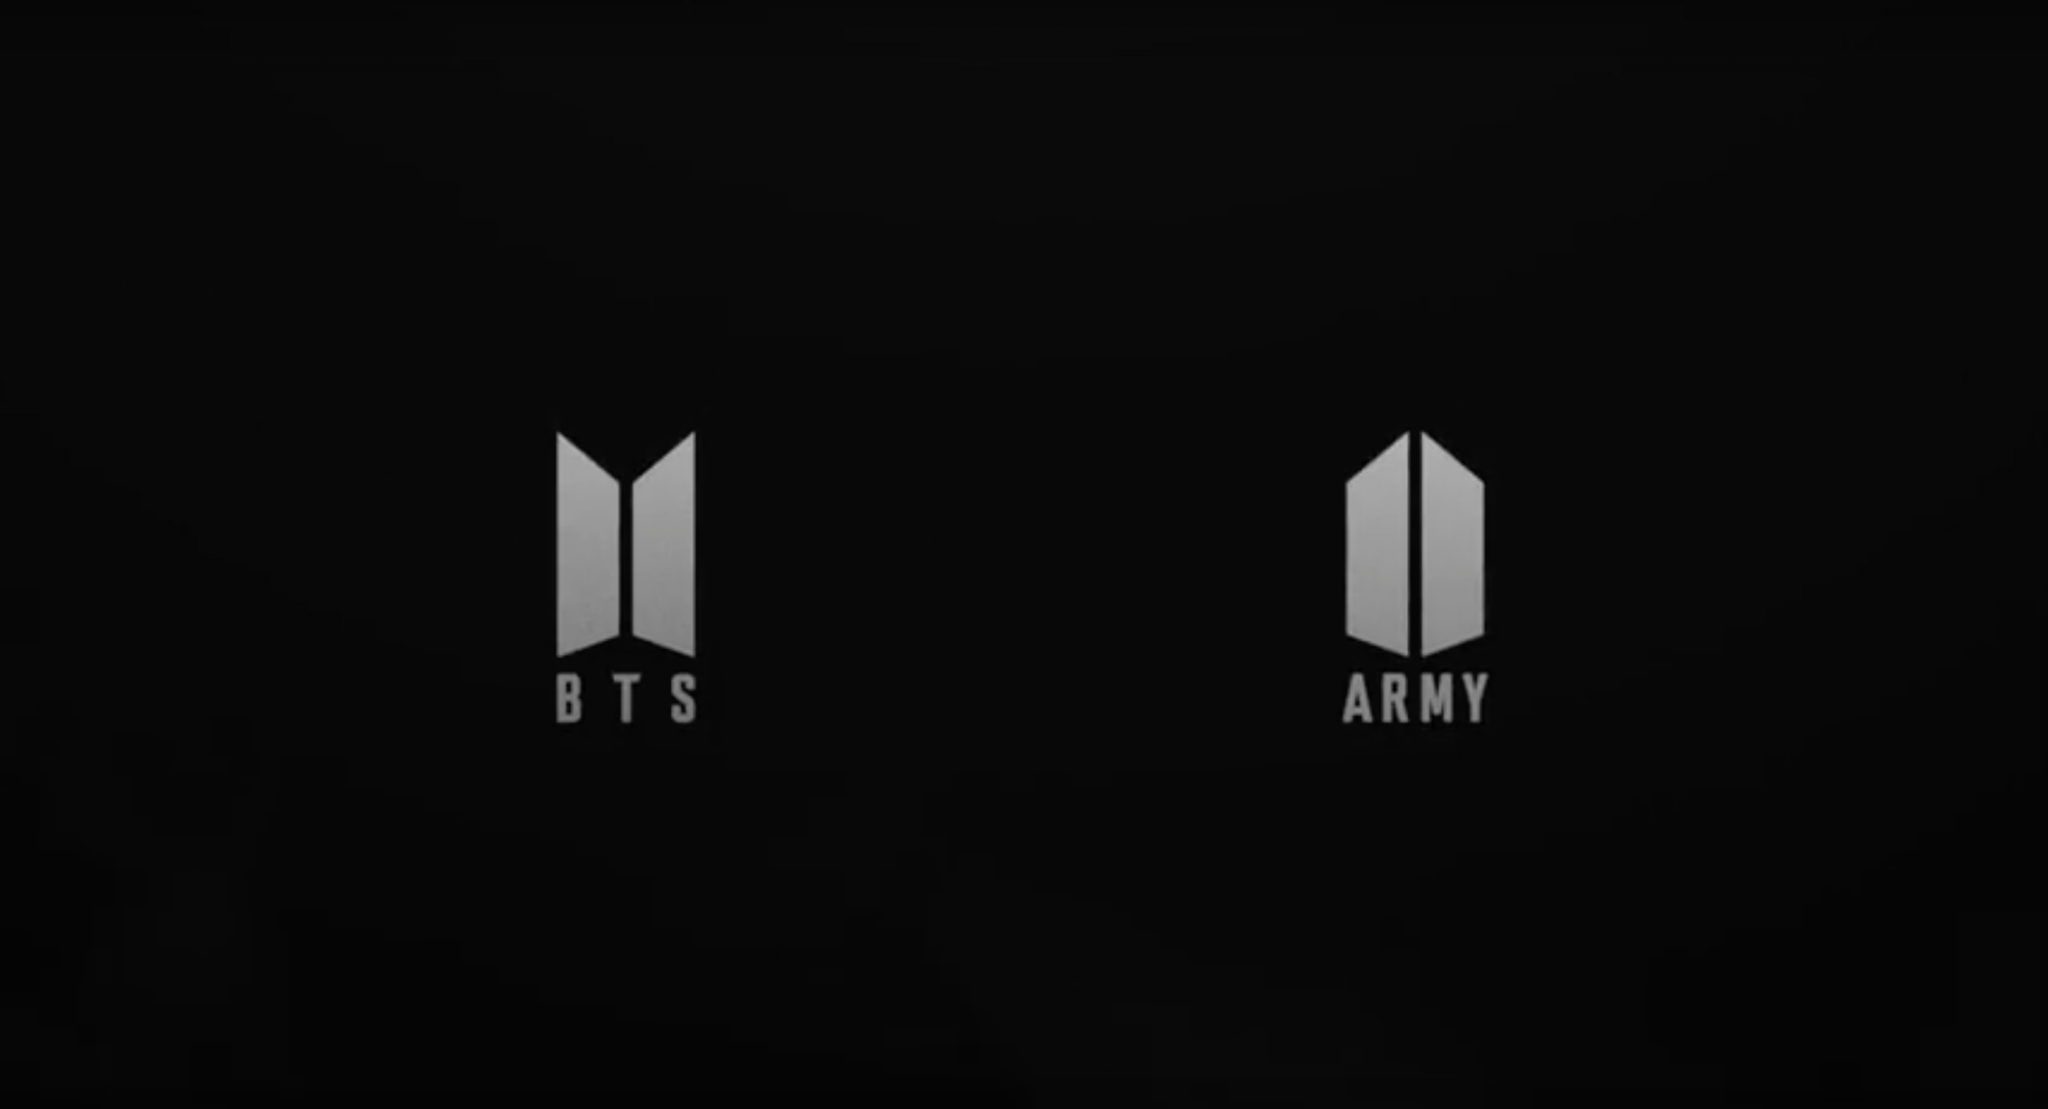 Details About BTS\' New Logo and Rebranding as \'Beyond The.